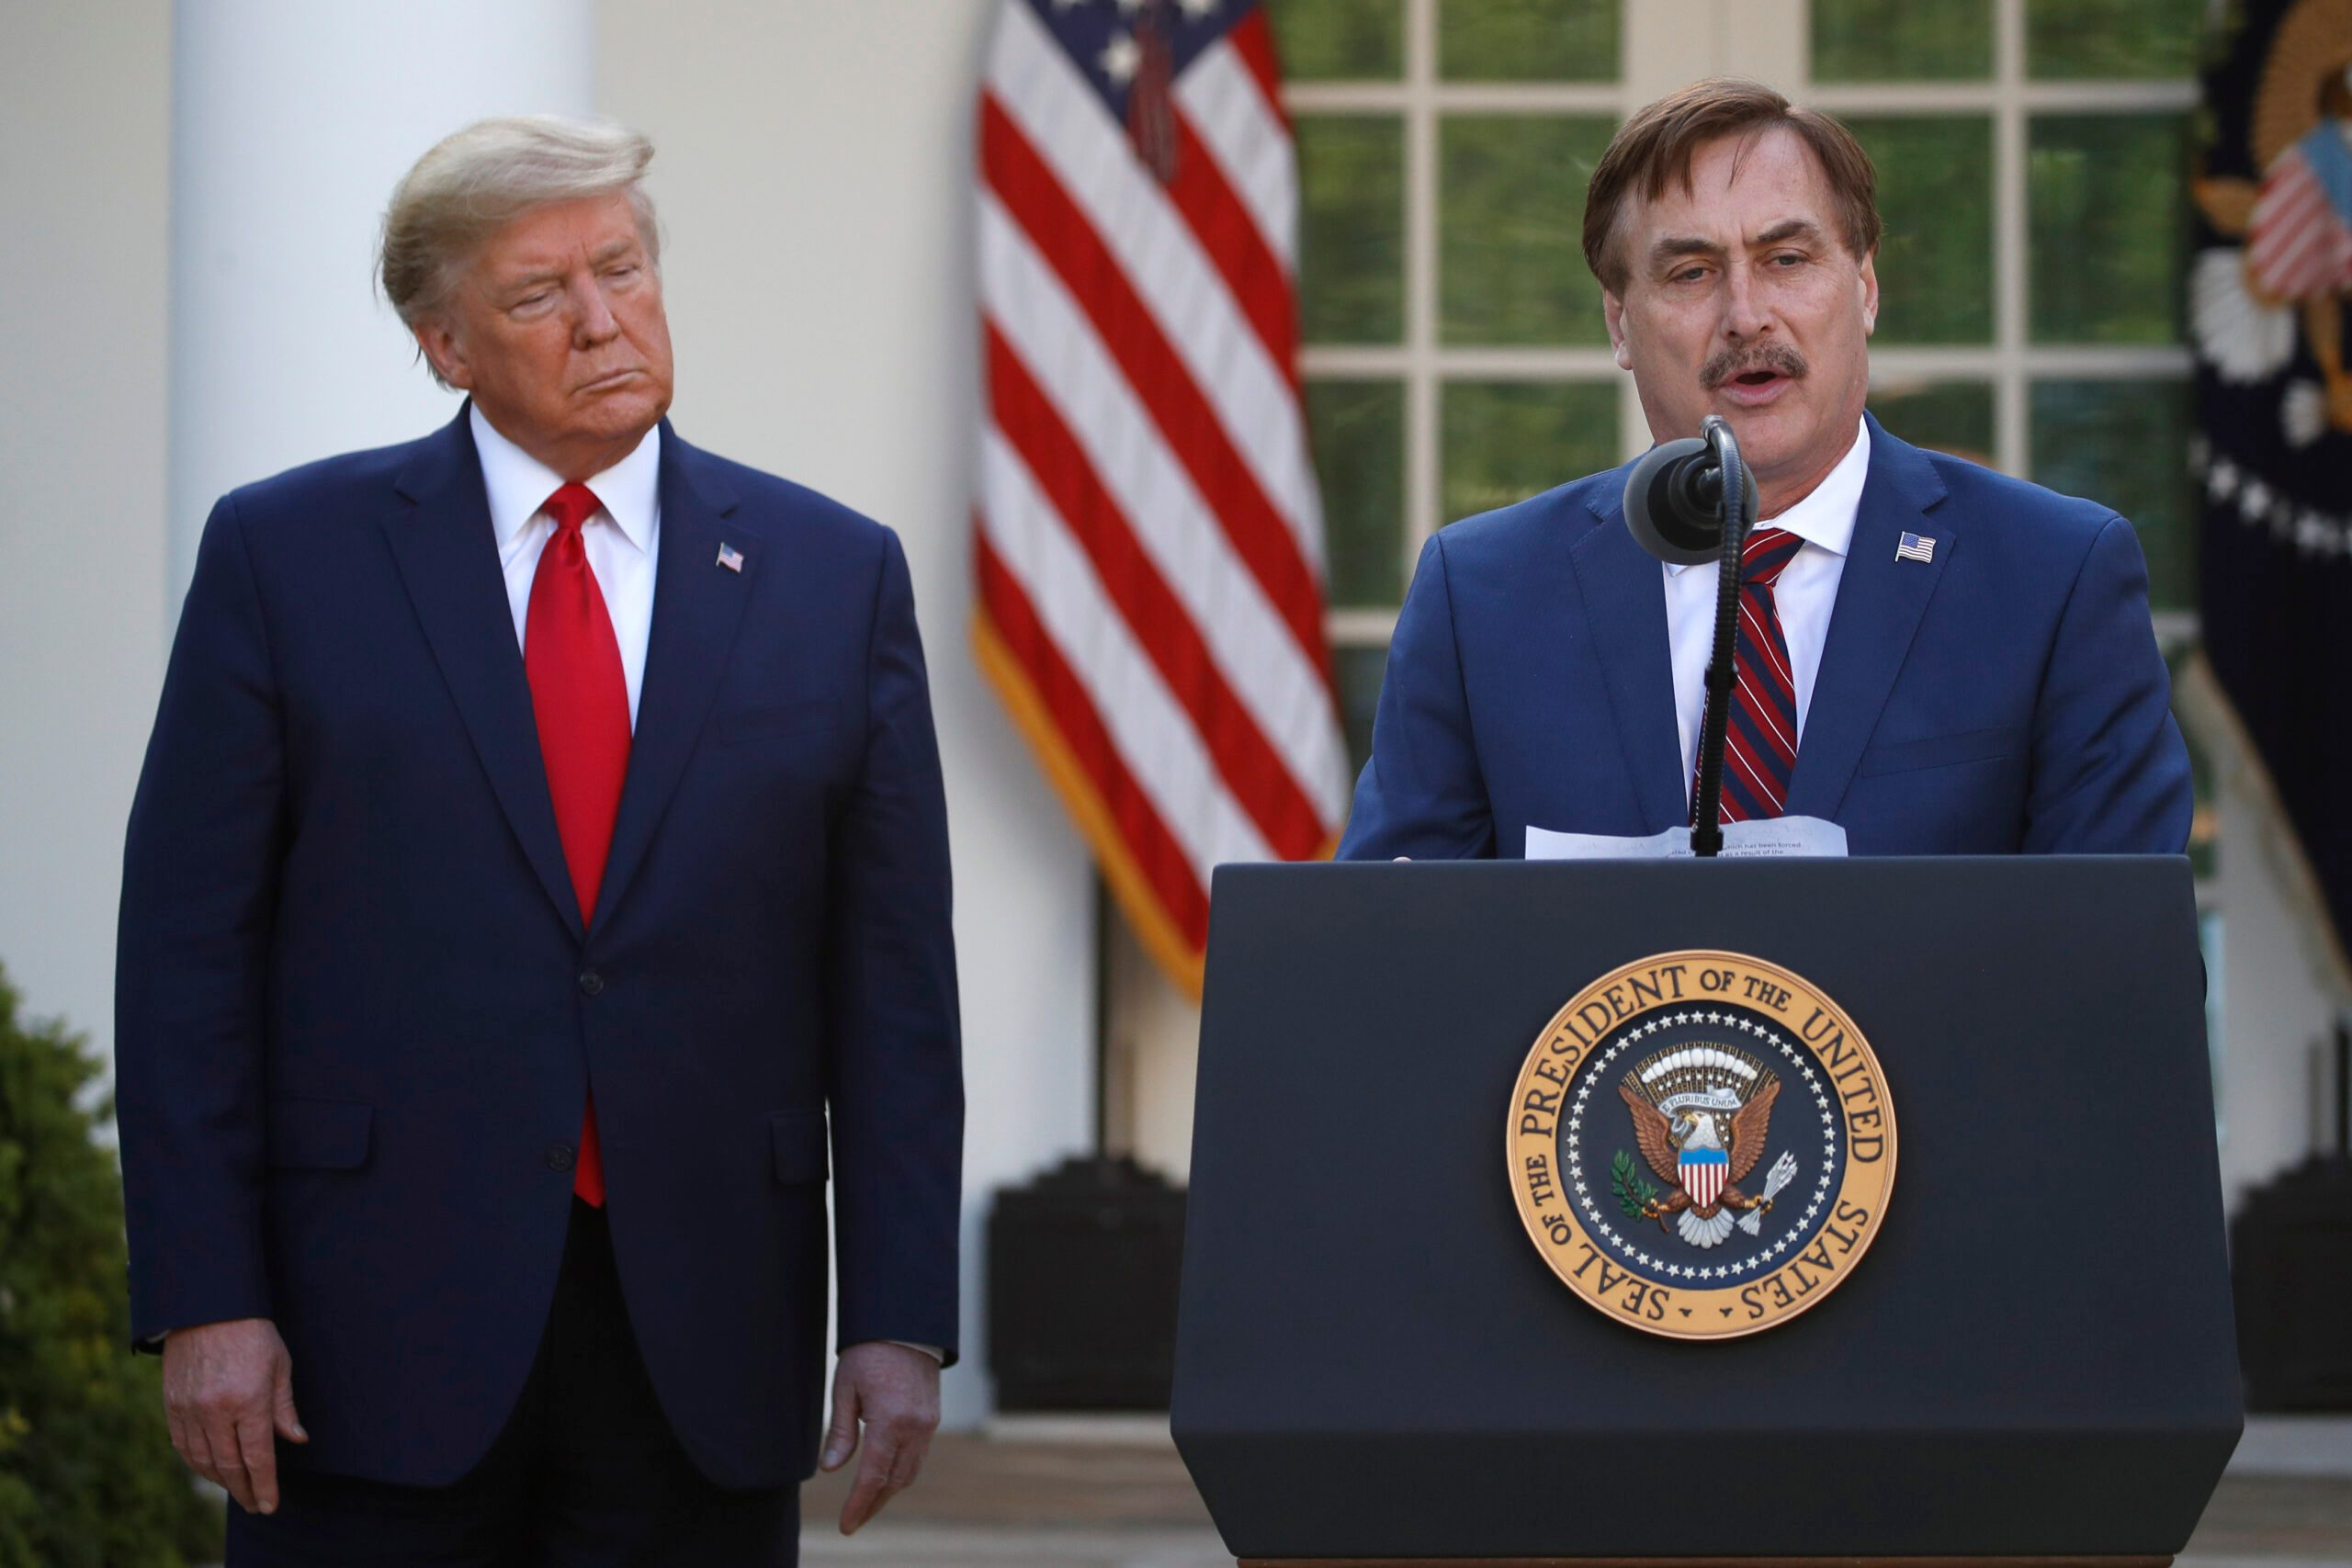 MyPillow Guy Among the Trump Acolytes Picking Up the Torch - snopes